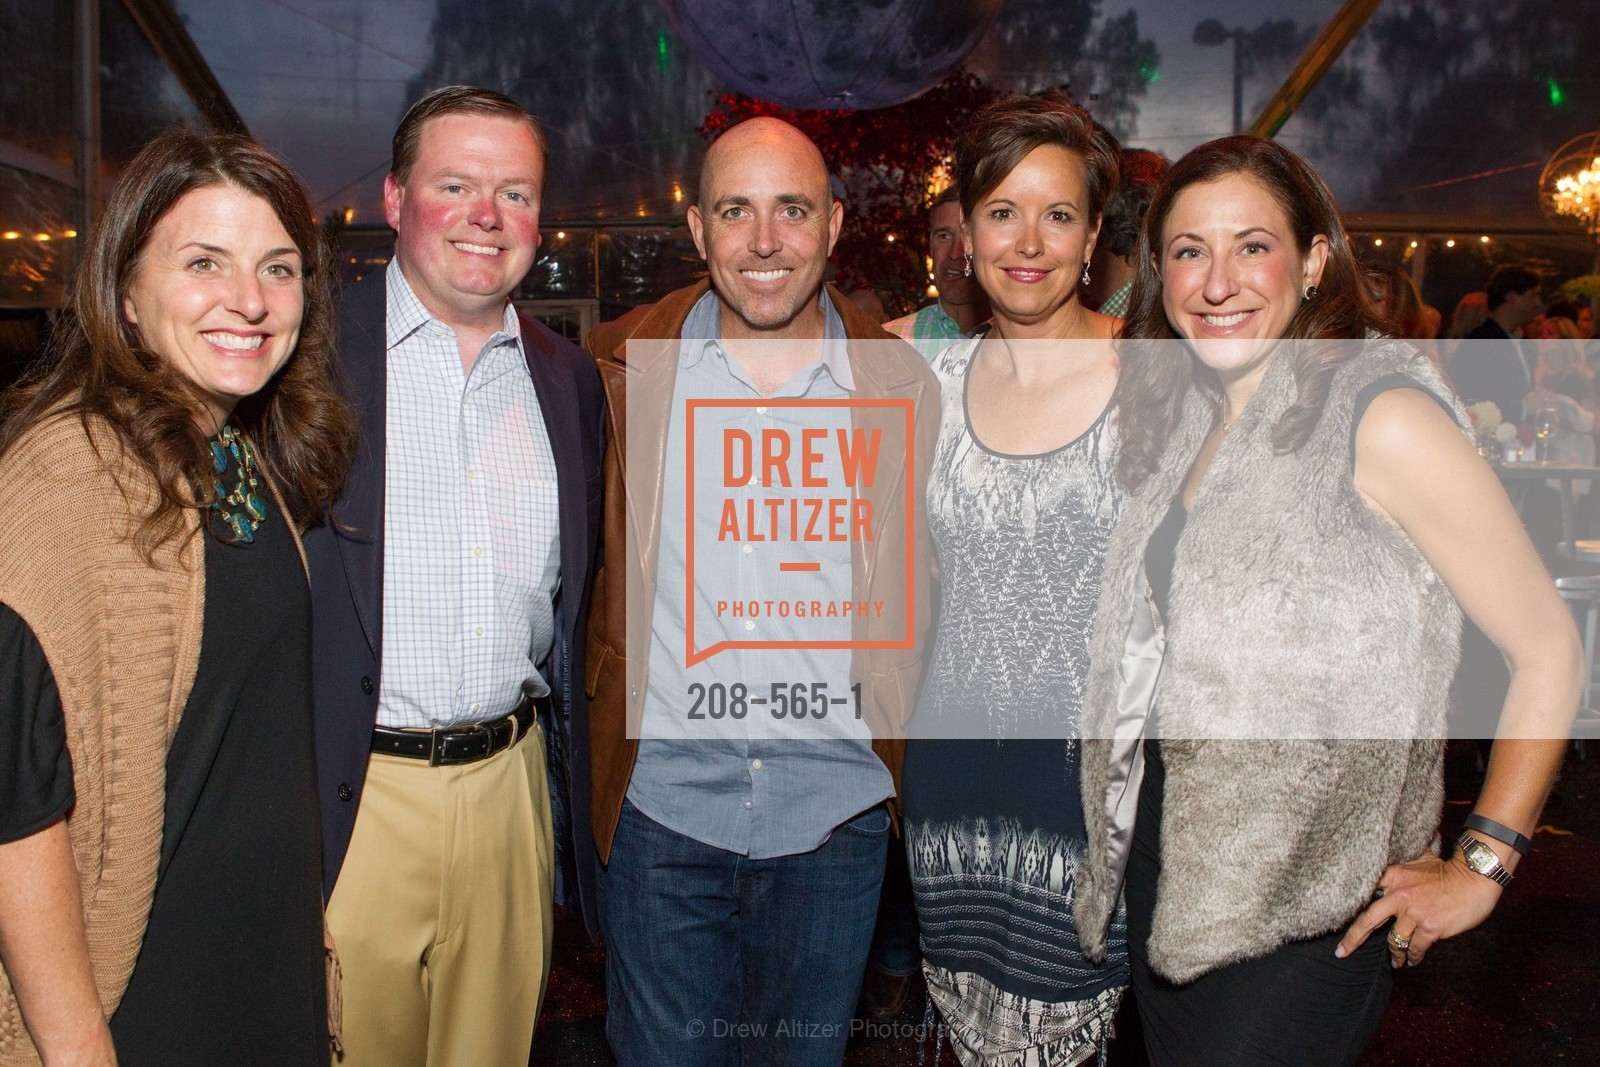 Heather Hahn Fowler, Ted Smith, Rick Dade, Kate Smith, Victoria Dade, GLAAD GALA Kick-Off Party Hosted by SAKS FIFTH AVENUE, Saks Fifth Avenue. 384 Post Street, September 12th, 2014,Drew Altizer, Drew Altizer Photography, full-service agency, private events, San Francisco photographer, photographer california